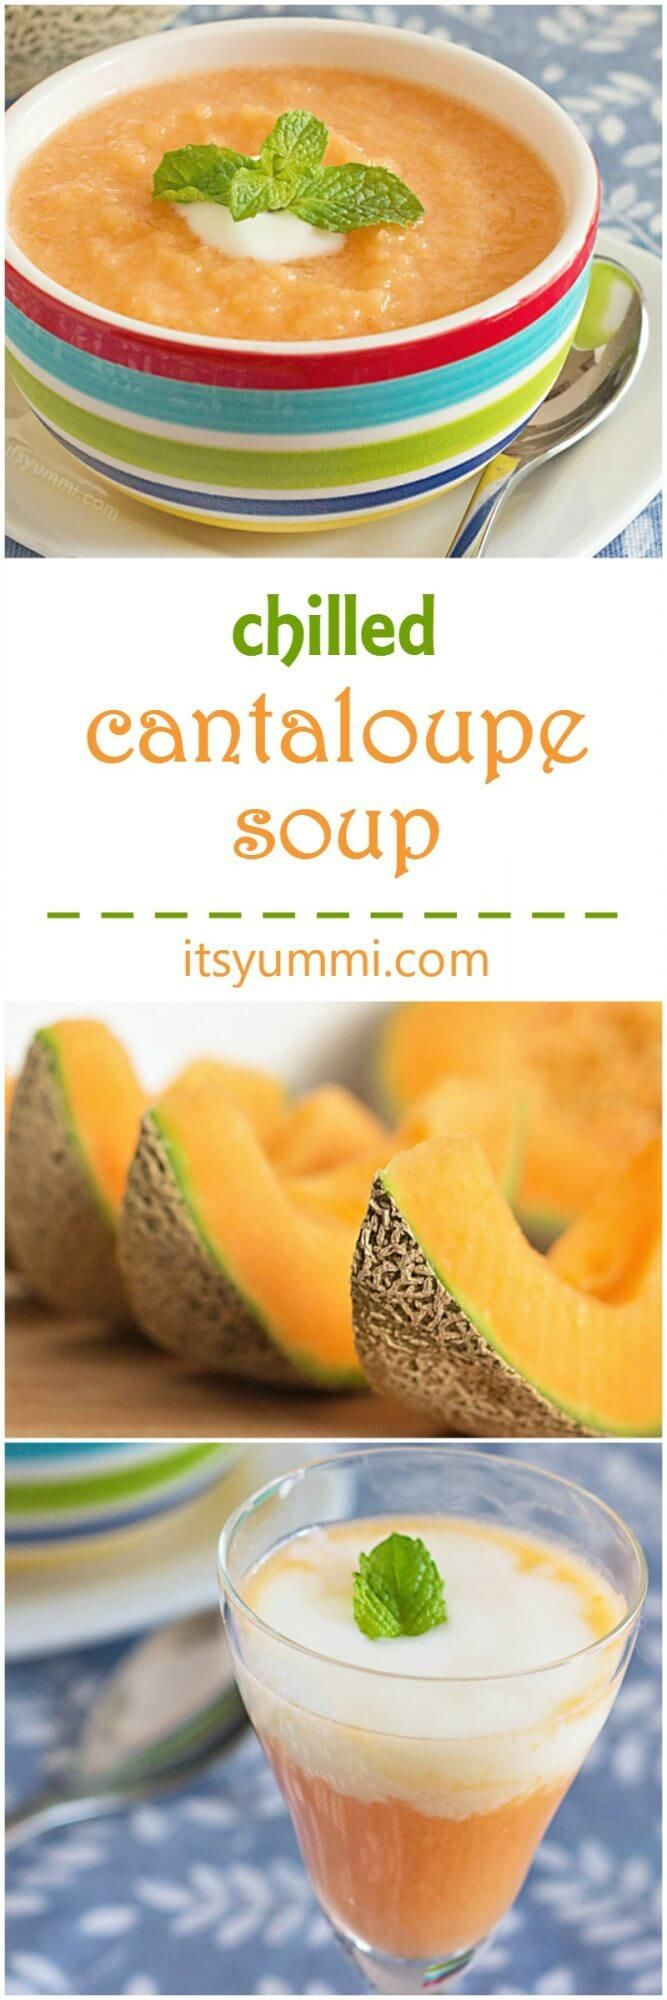 chilled cantaloupe soup recipe! Featuring Greek yogurt, cantaloupe ...